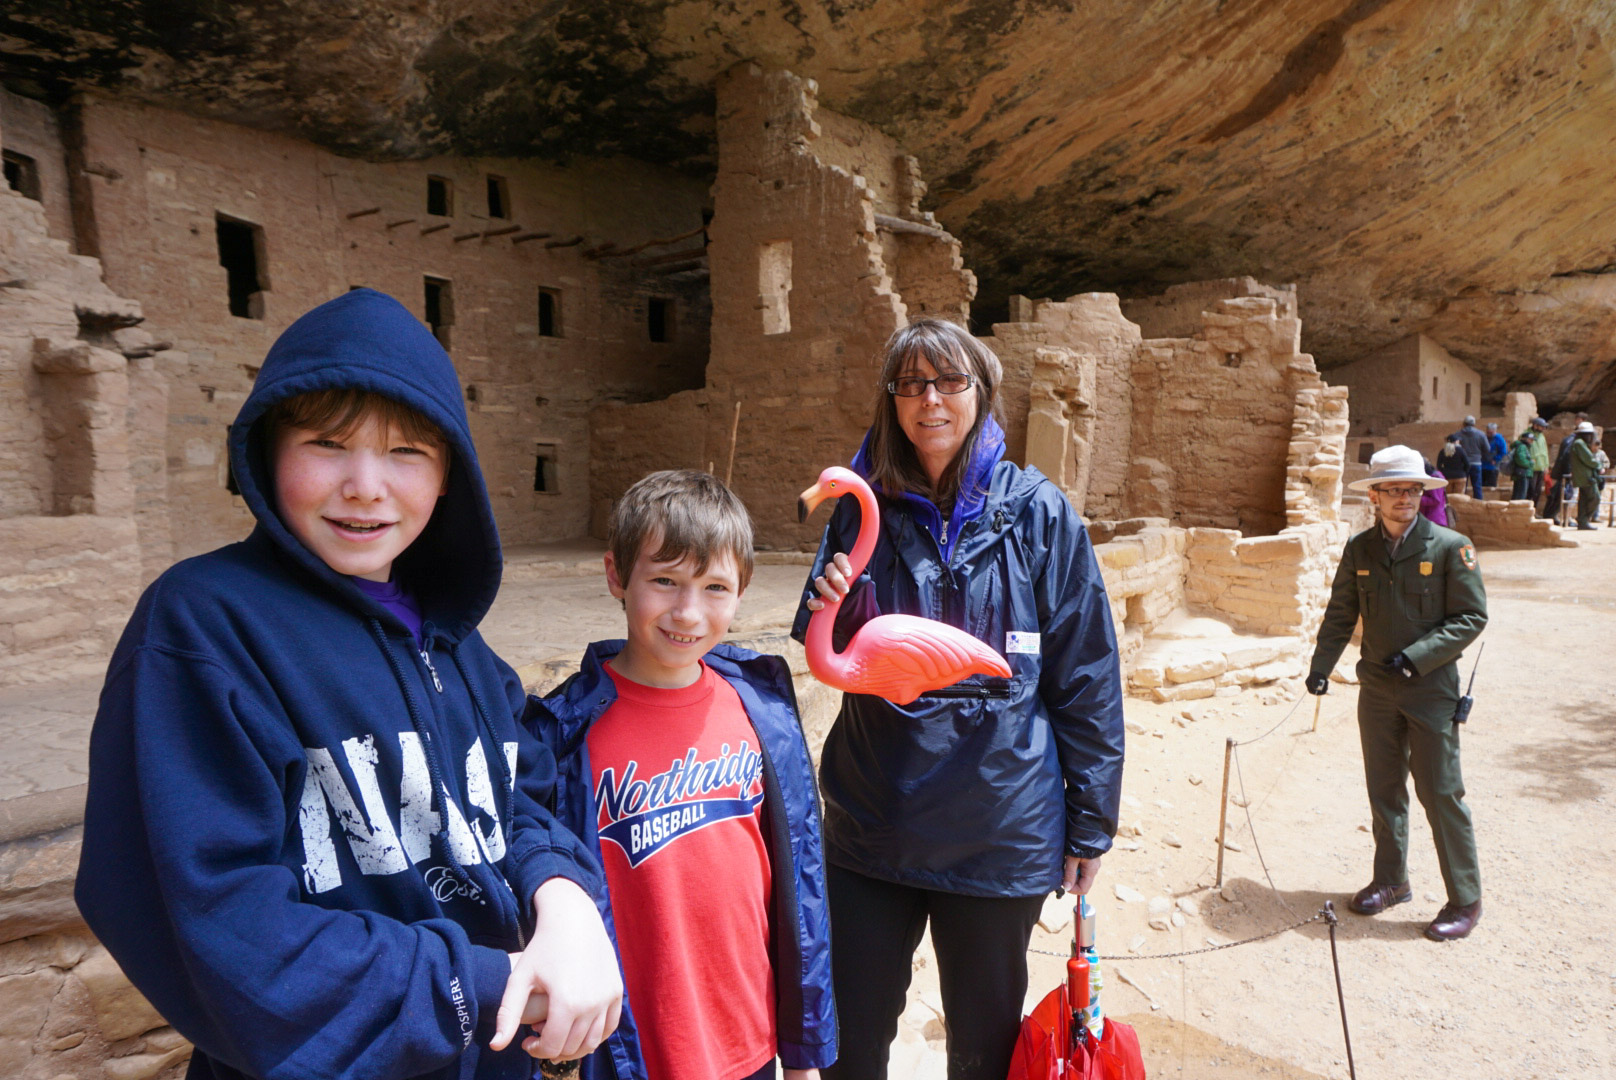 Visiting Mesa Verde National Park